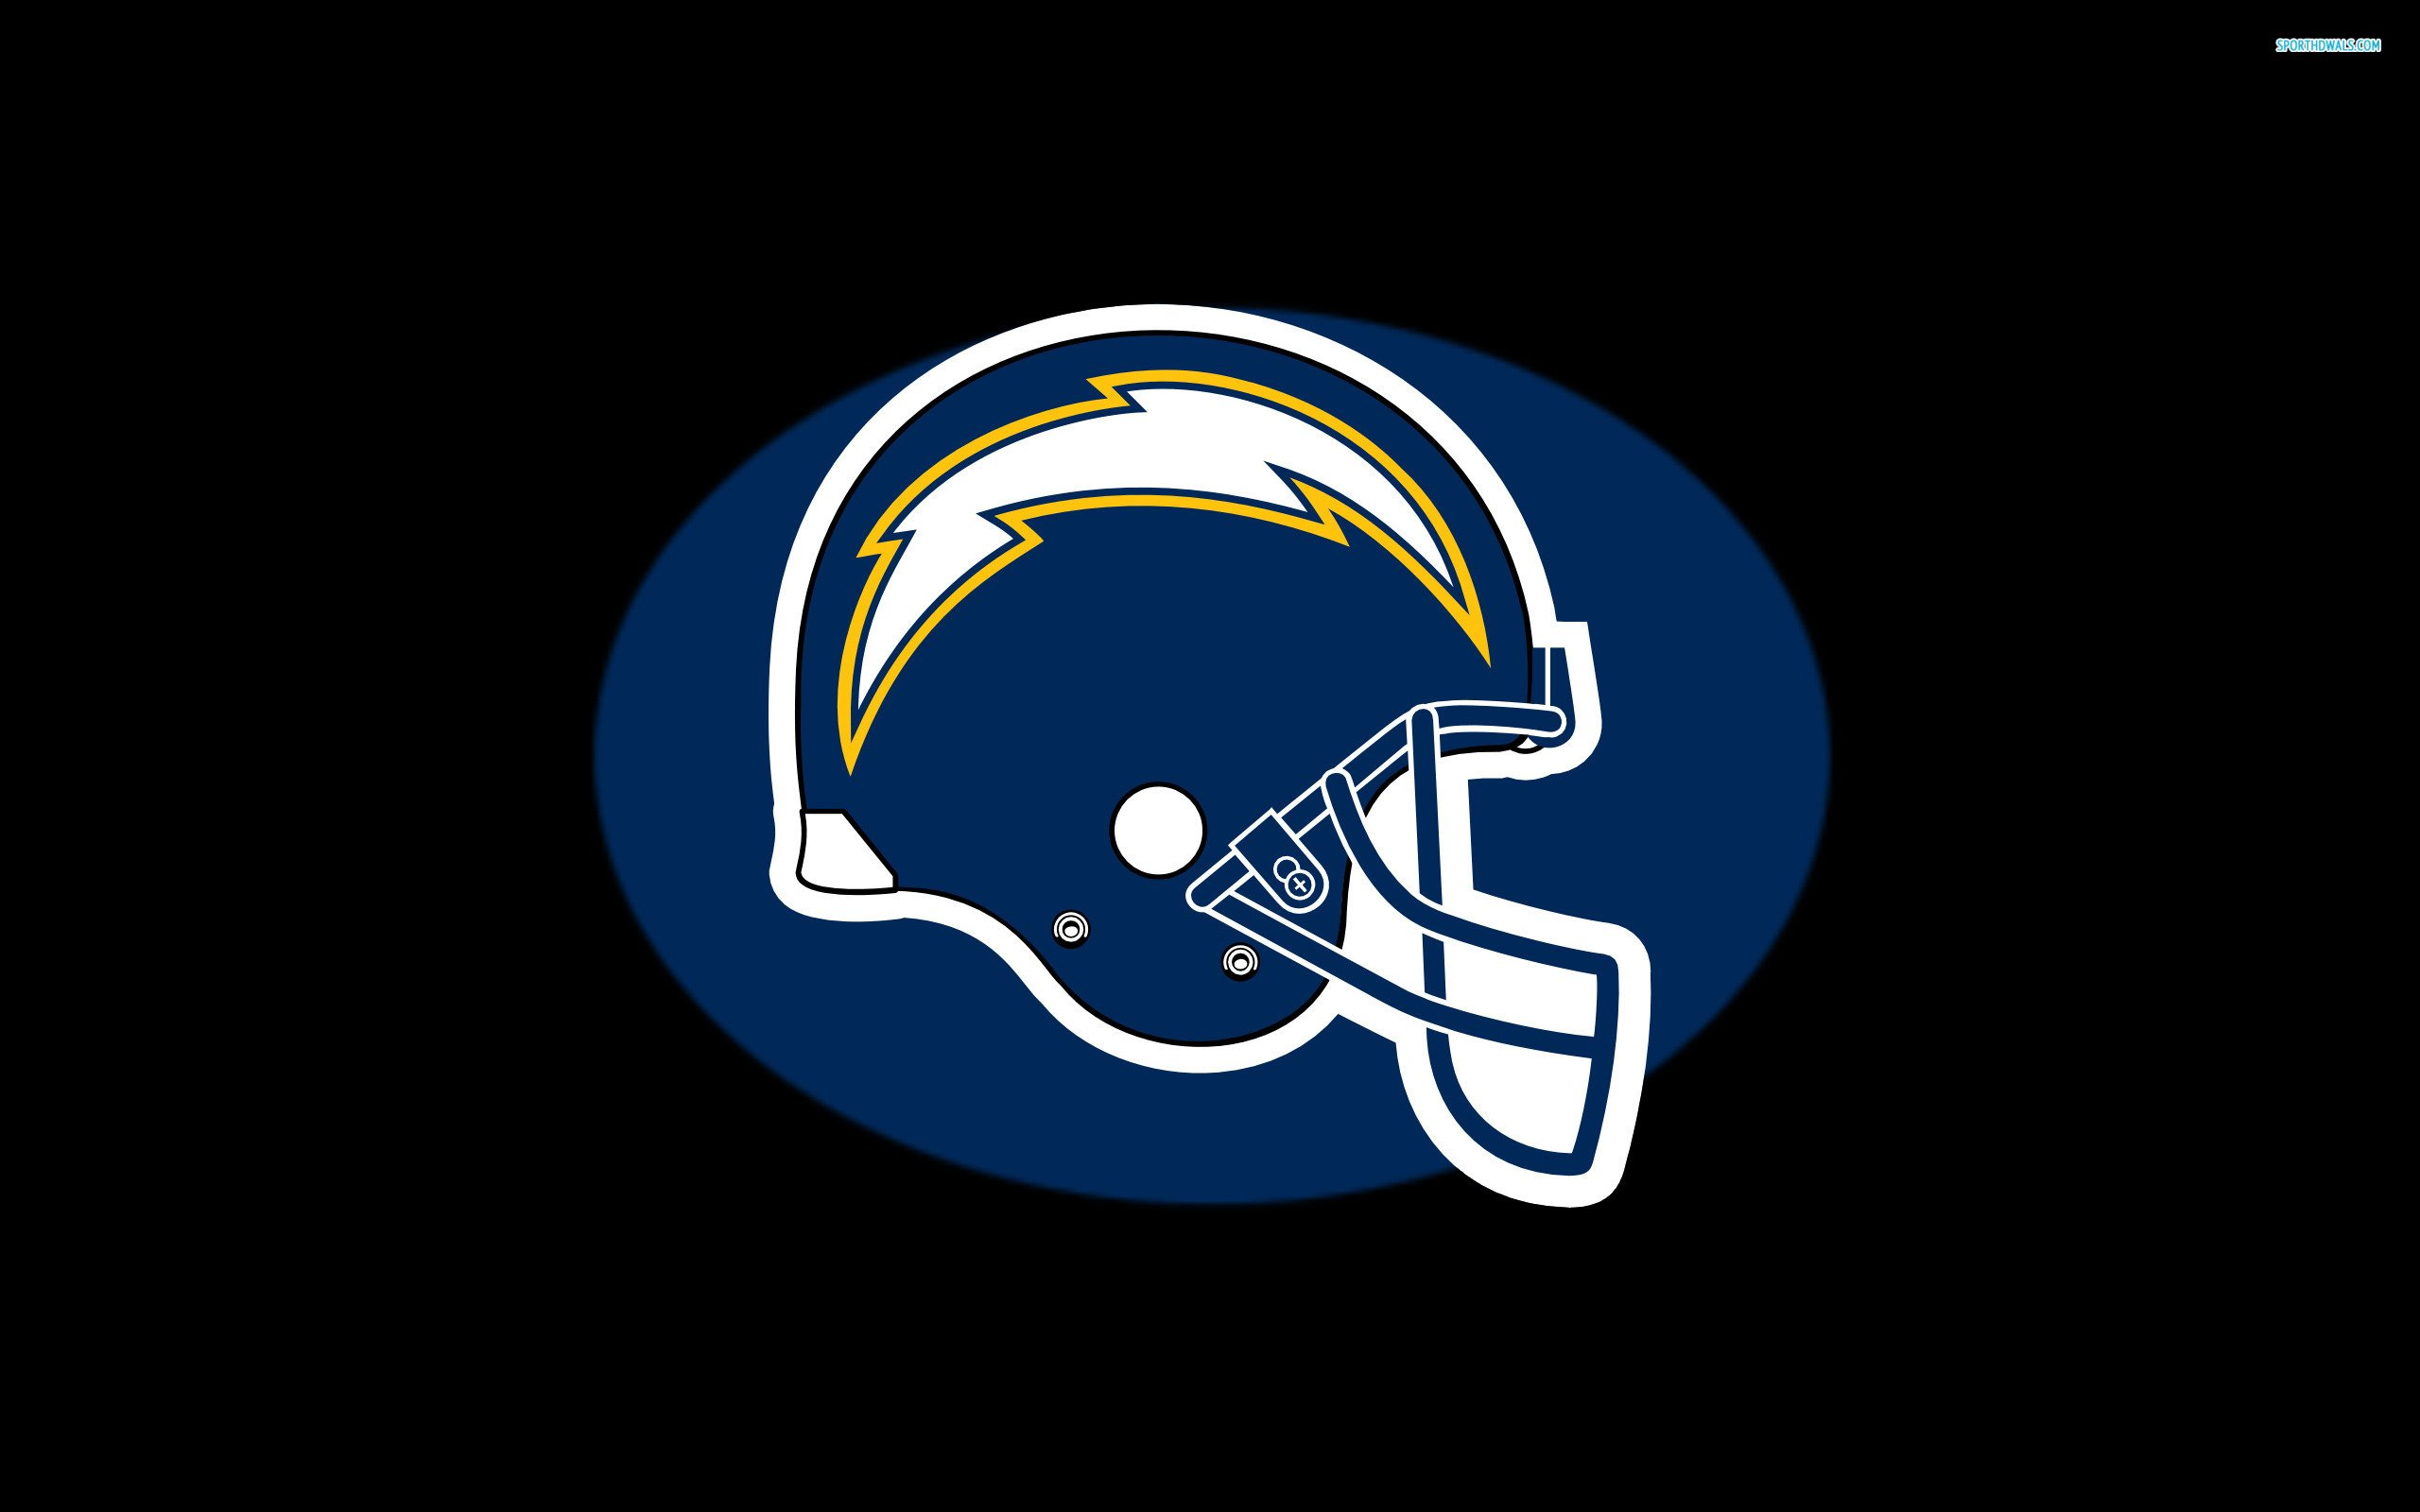 Free Download San Diego Chargers Nfl Football Fz Wallpaper